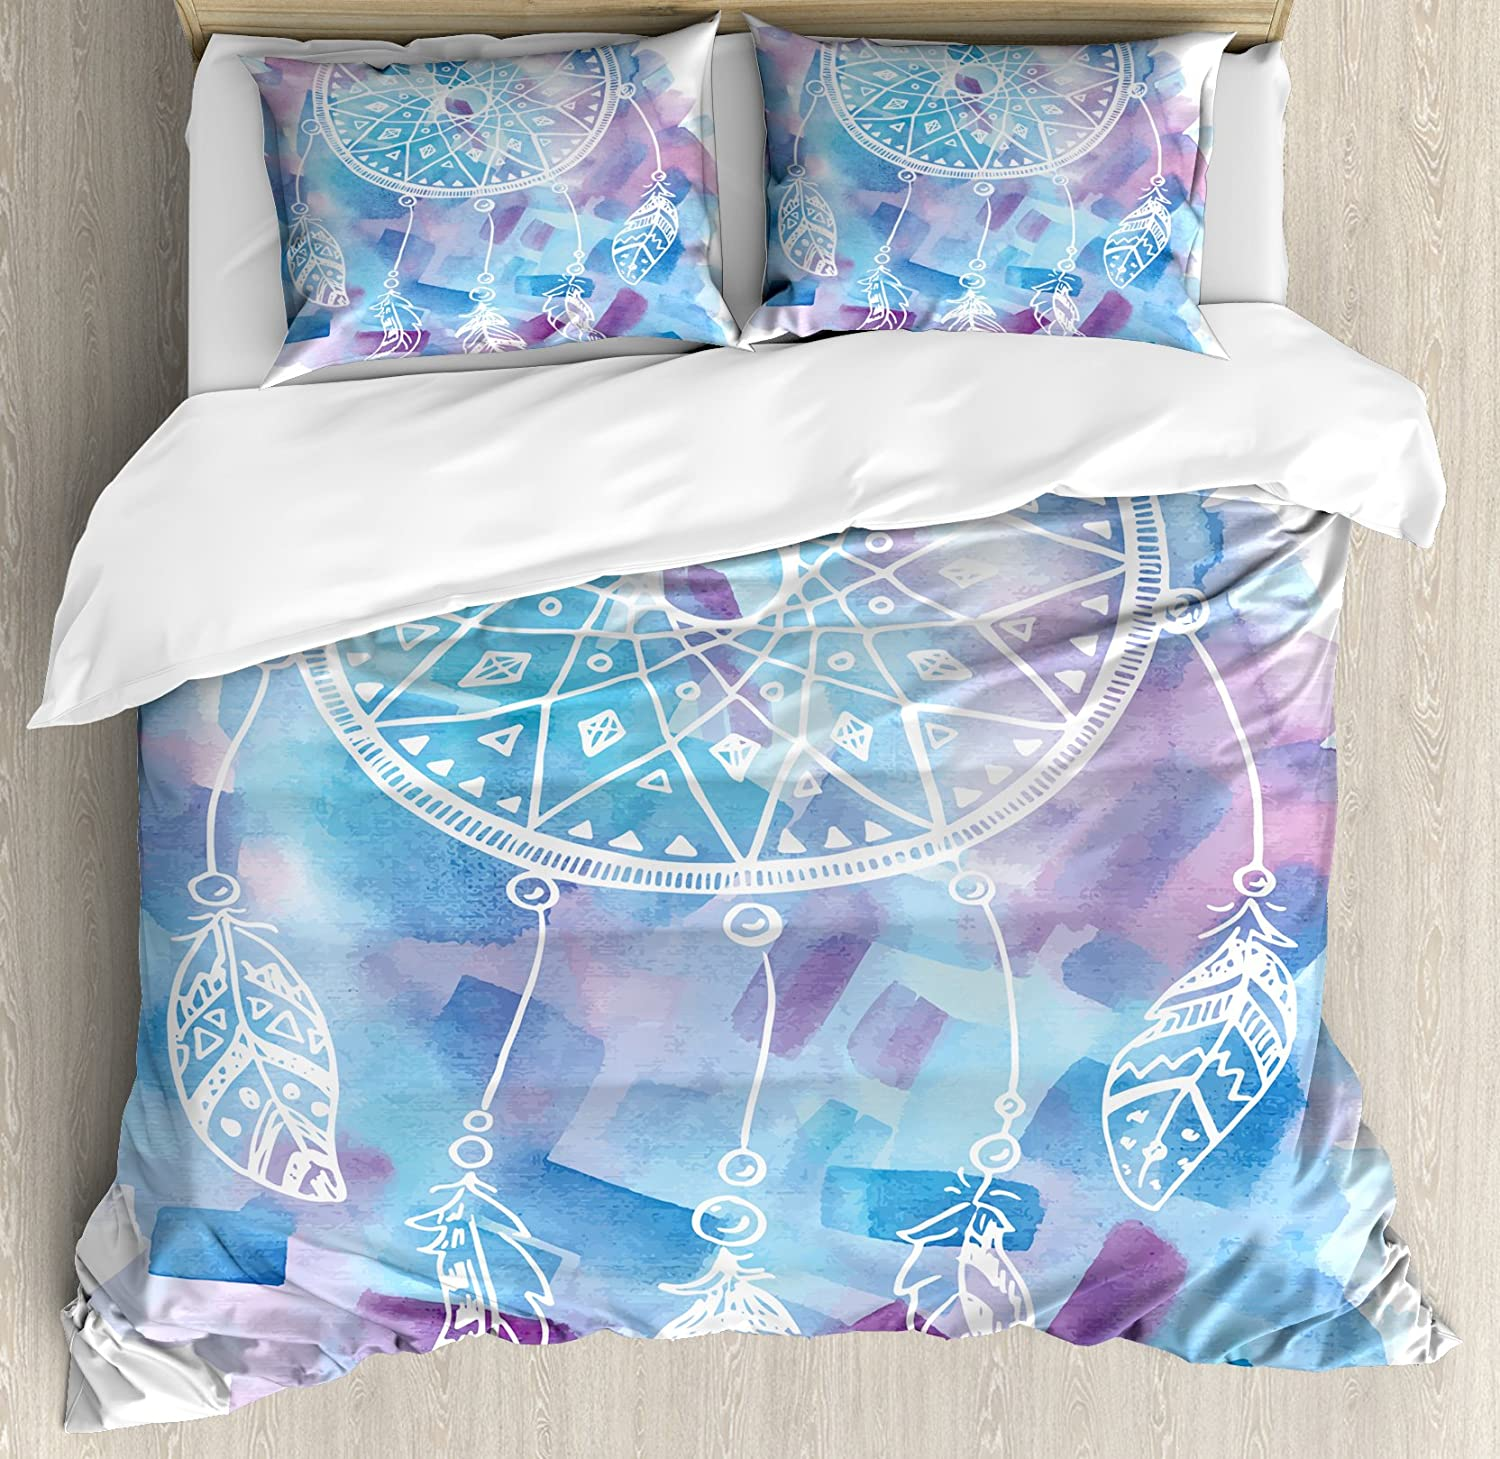 Ambesonne Feather Duvet Cover Set Queen Size, Abstract Dream Catcher with Watercolor Background Artistic Brushstrokes, Decorative 3 Piece Bedding Set with 2 Pillow Shams, Pale Blue Lilac White